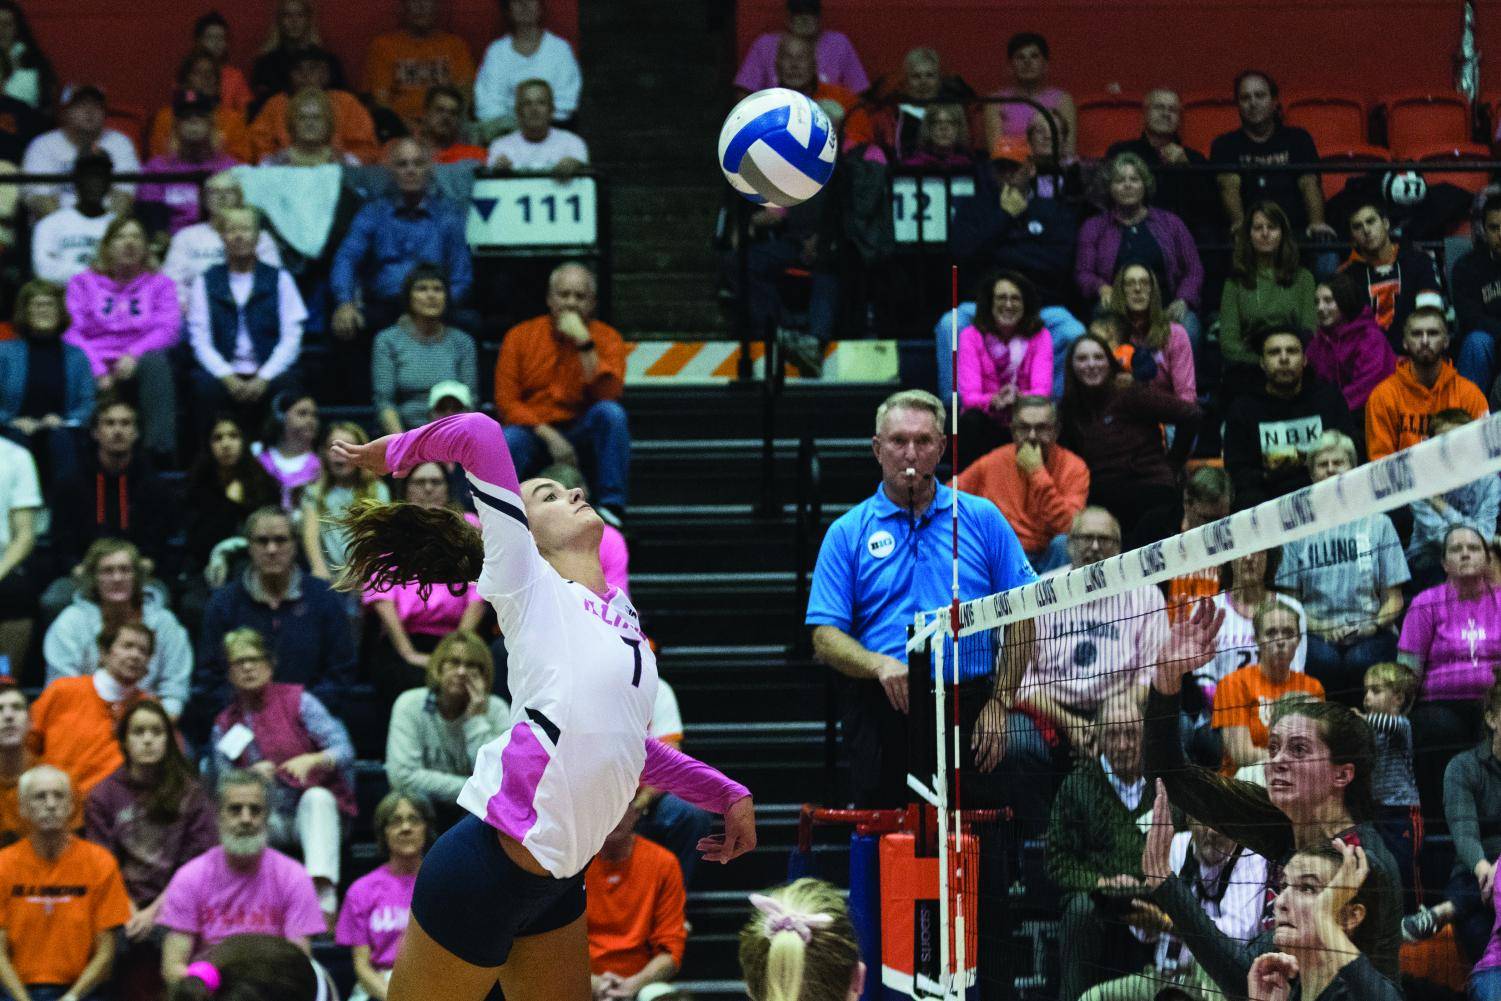 Senior Jacqueline Quade jumps to the net in Huff Hall on Saturday. Quade led the Illini with 13 kills, helping the team defeat the Buckeyes 3-0.